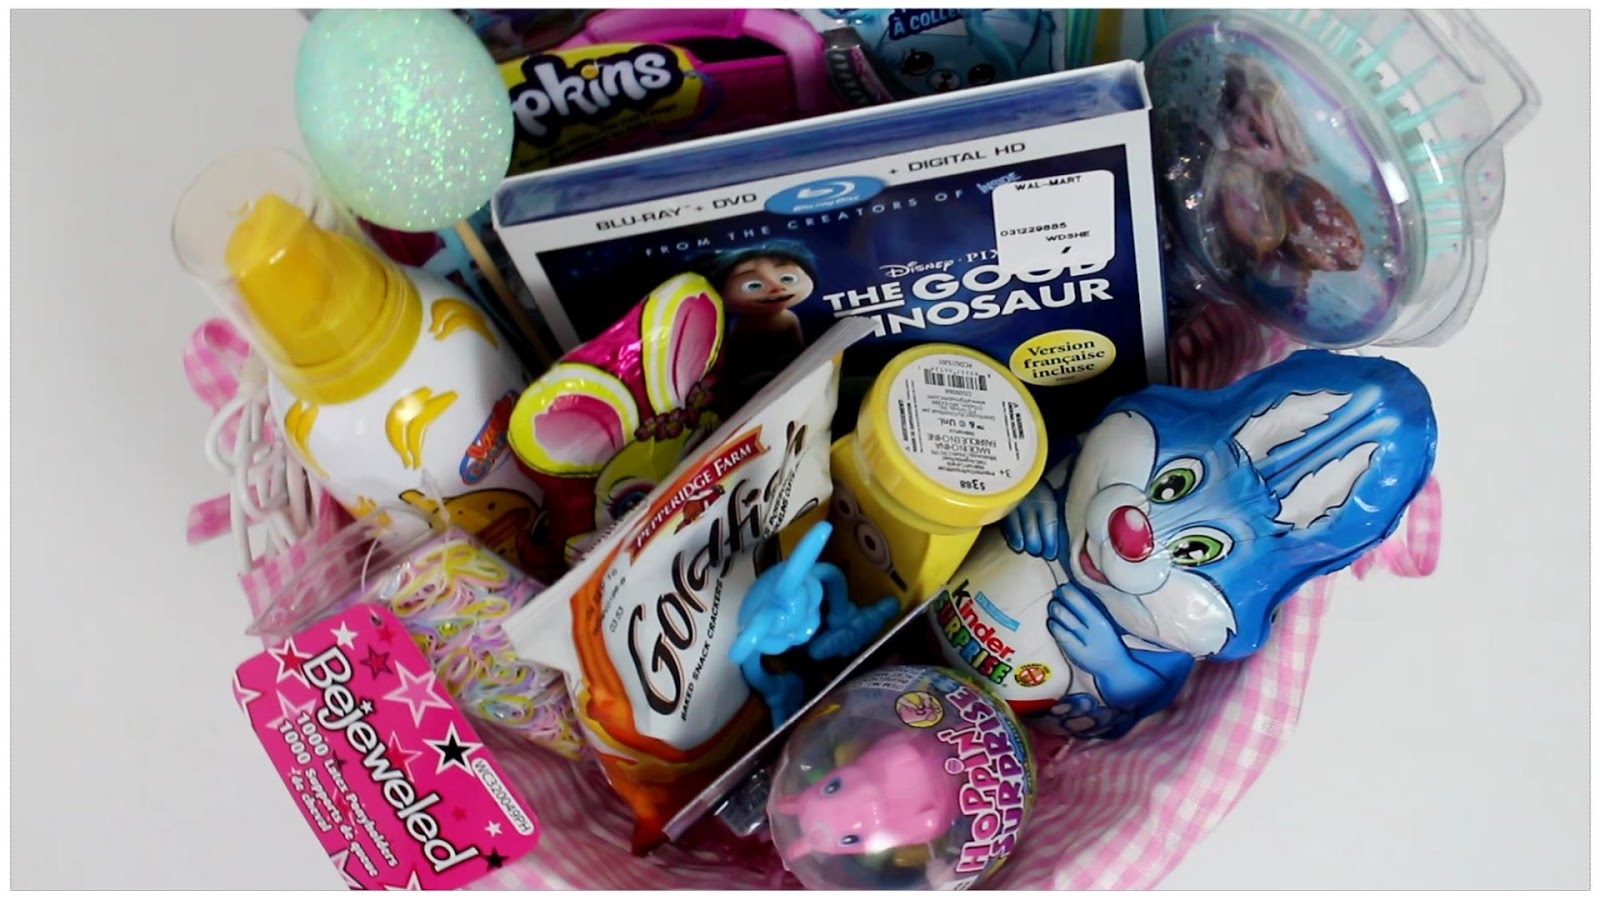 Hh harris family journey easter basket ideas for girls here is what im putting in my 5 year old twin girls easter baskets this year negle Choice Image